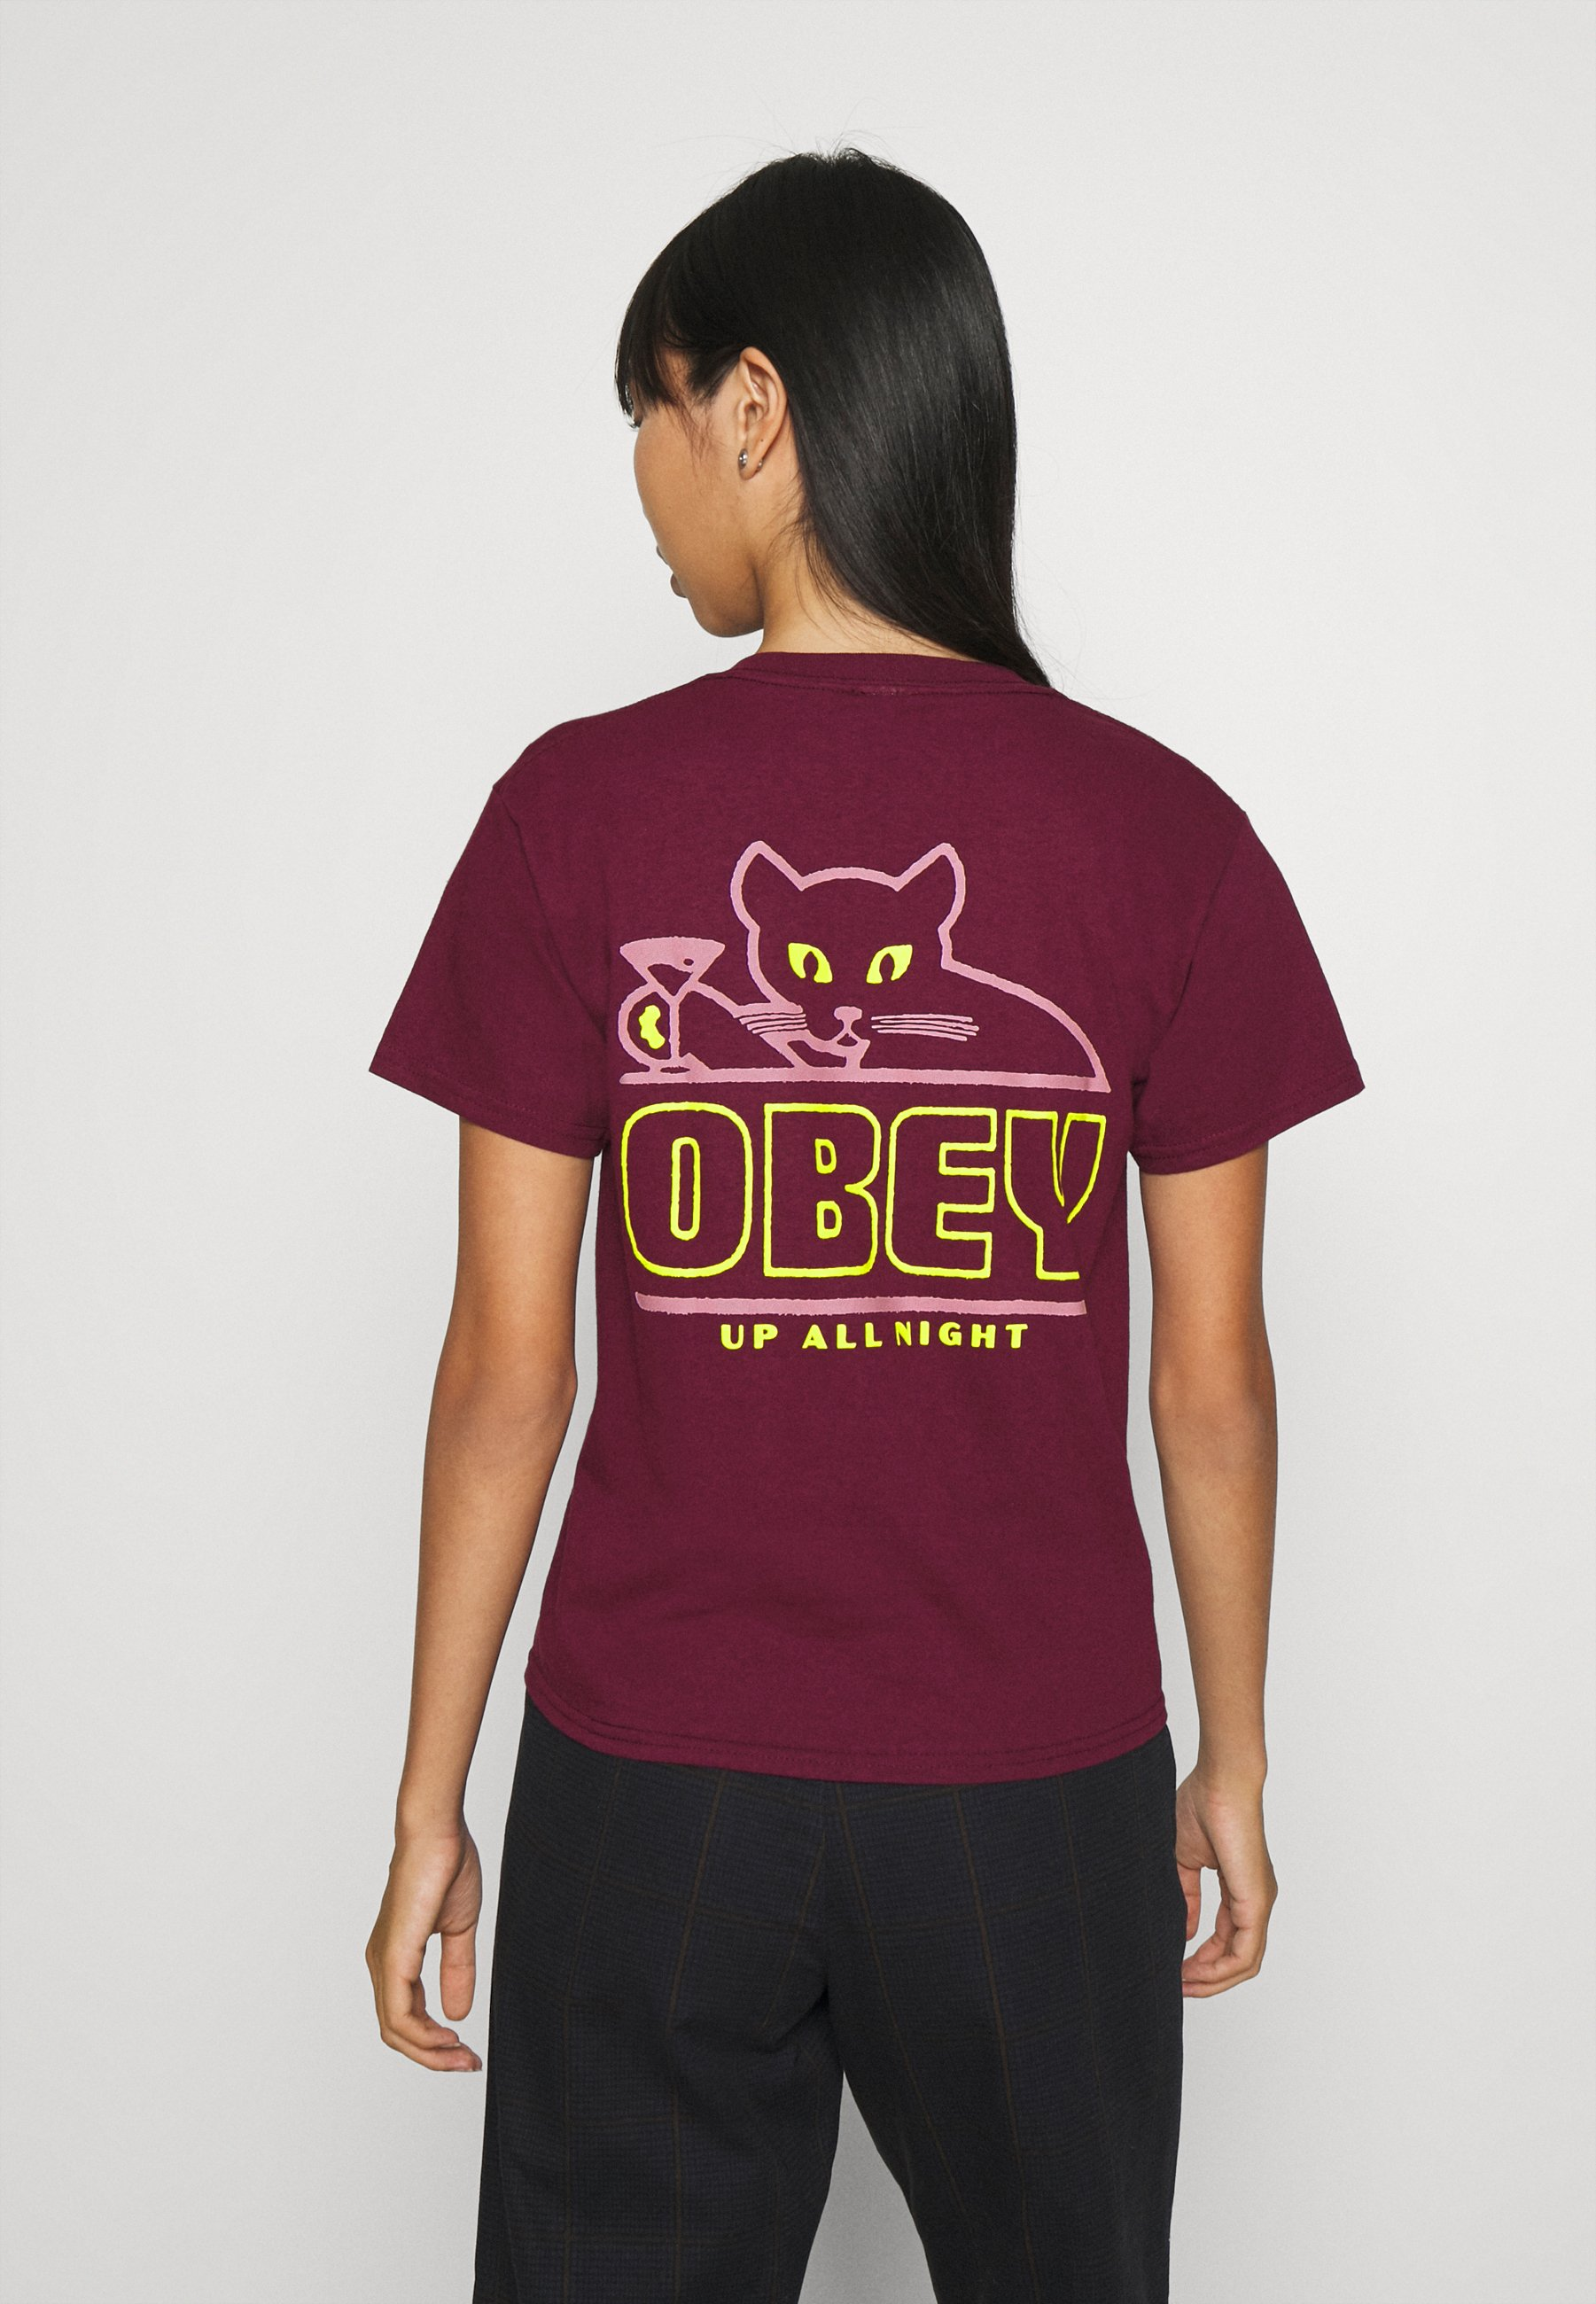 Obey Clothing Up All Night - T-shirts Med Print Maroon/vinrød